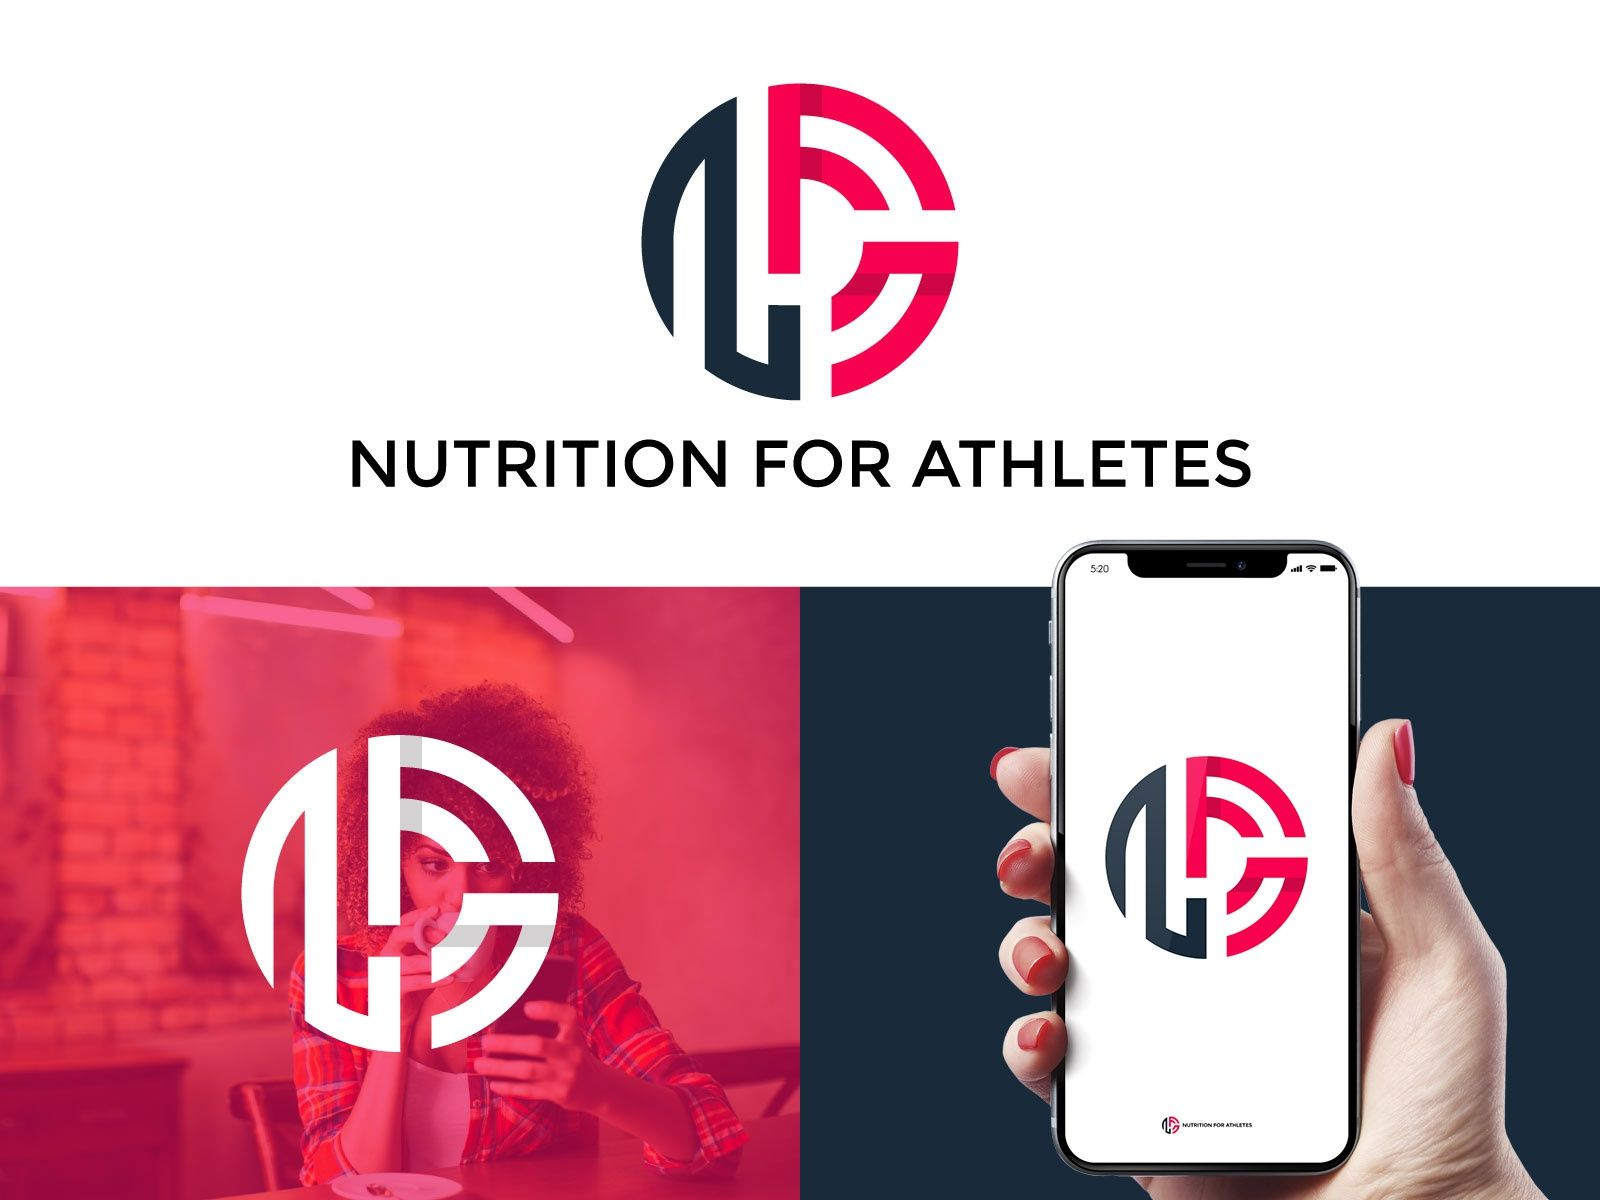 N F A Nutrition For Athletes logos by Jony Parvez #athletenutrition